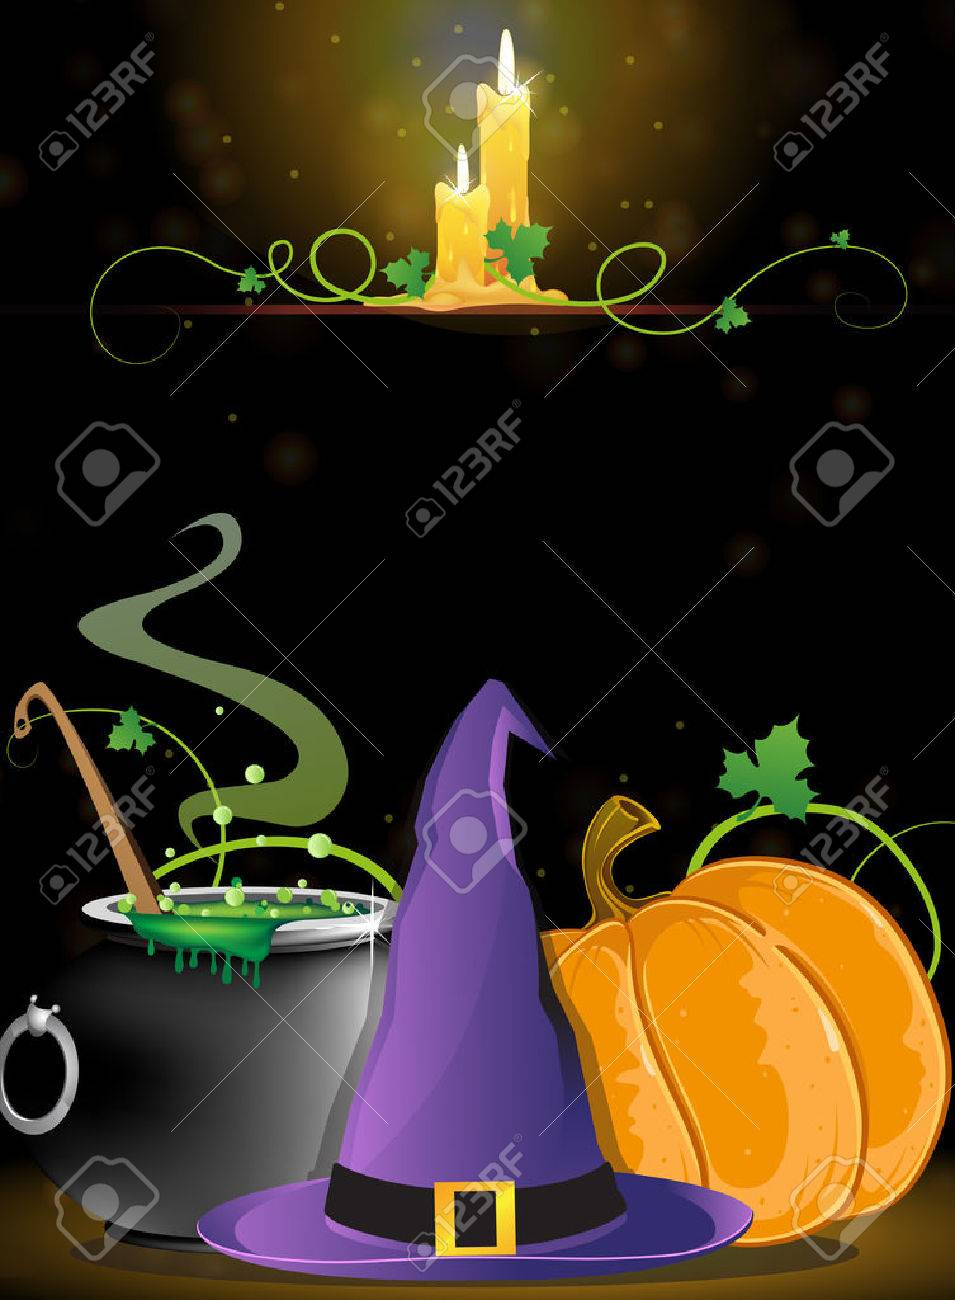 Witch hat, boiling cauldron, pumpkin and burning candles on a dark background - 22910592